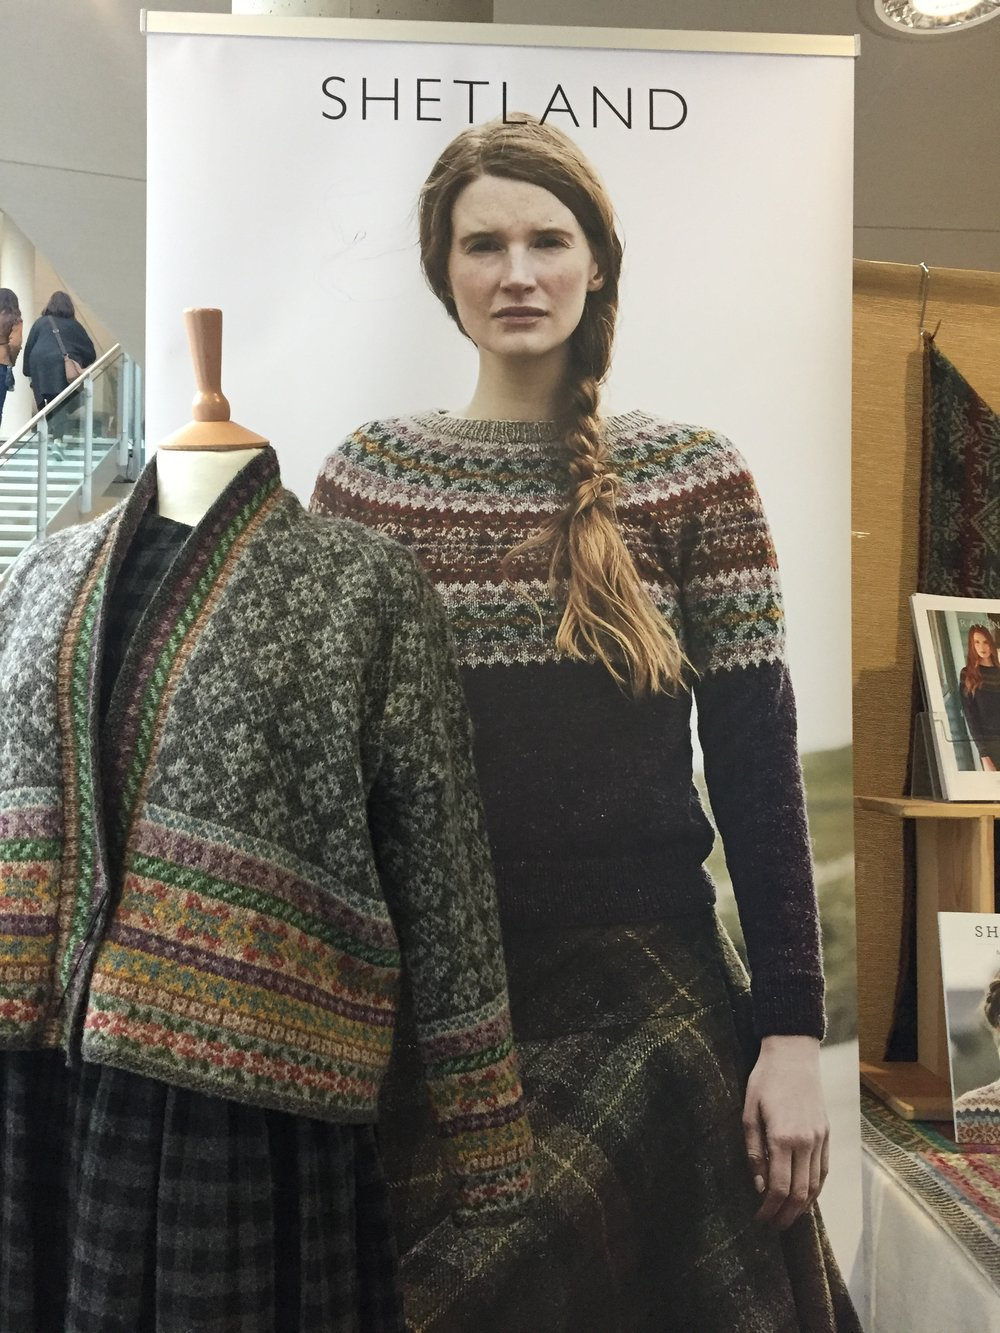 Items from Marie Wallin Designs latest collection  Shetland photo taken by Aleks Byrd  at Nottingham Yarn Expo 2017